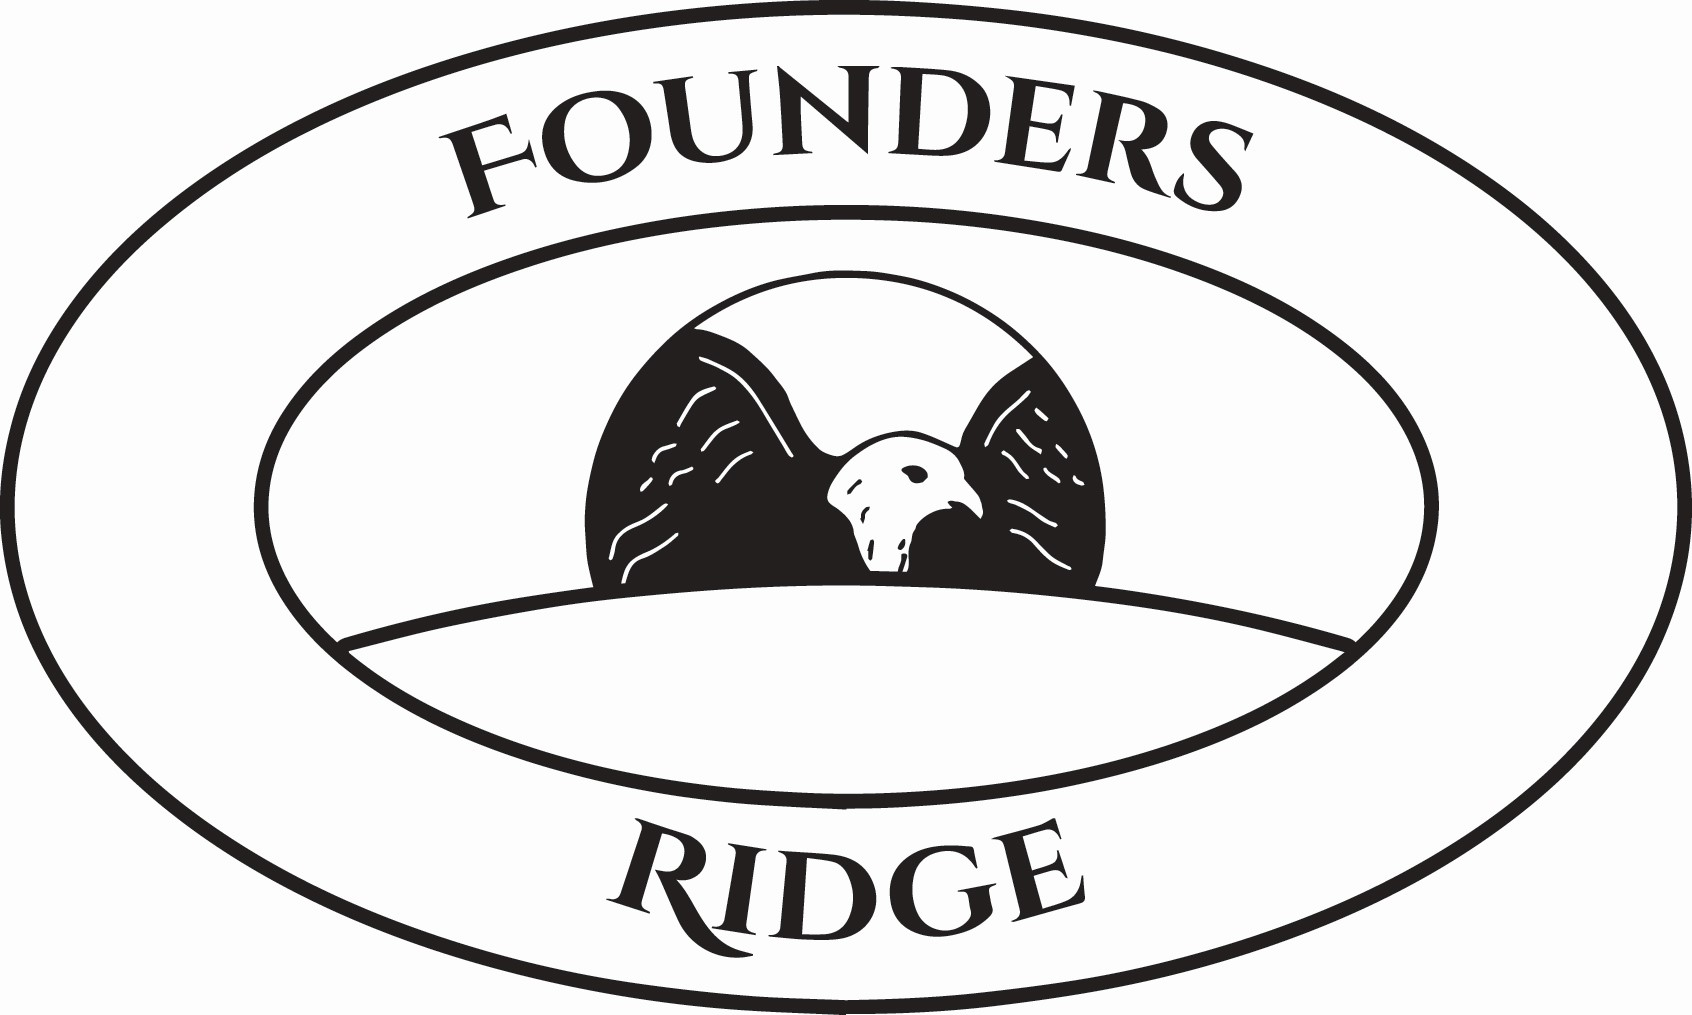 55+ Active Adult Community -Founders' Ridge